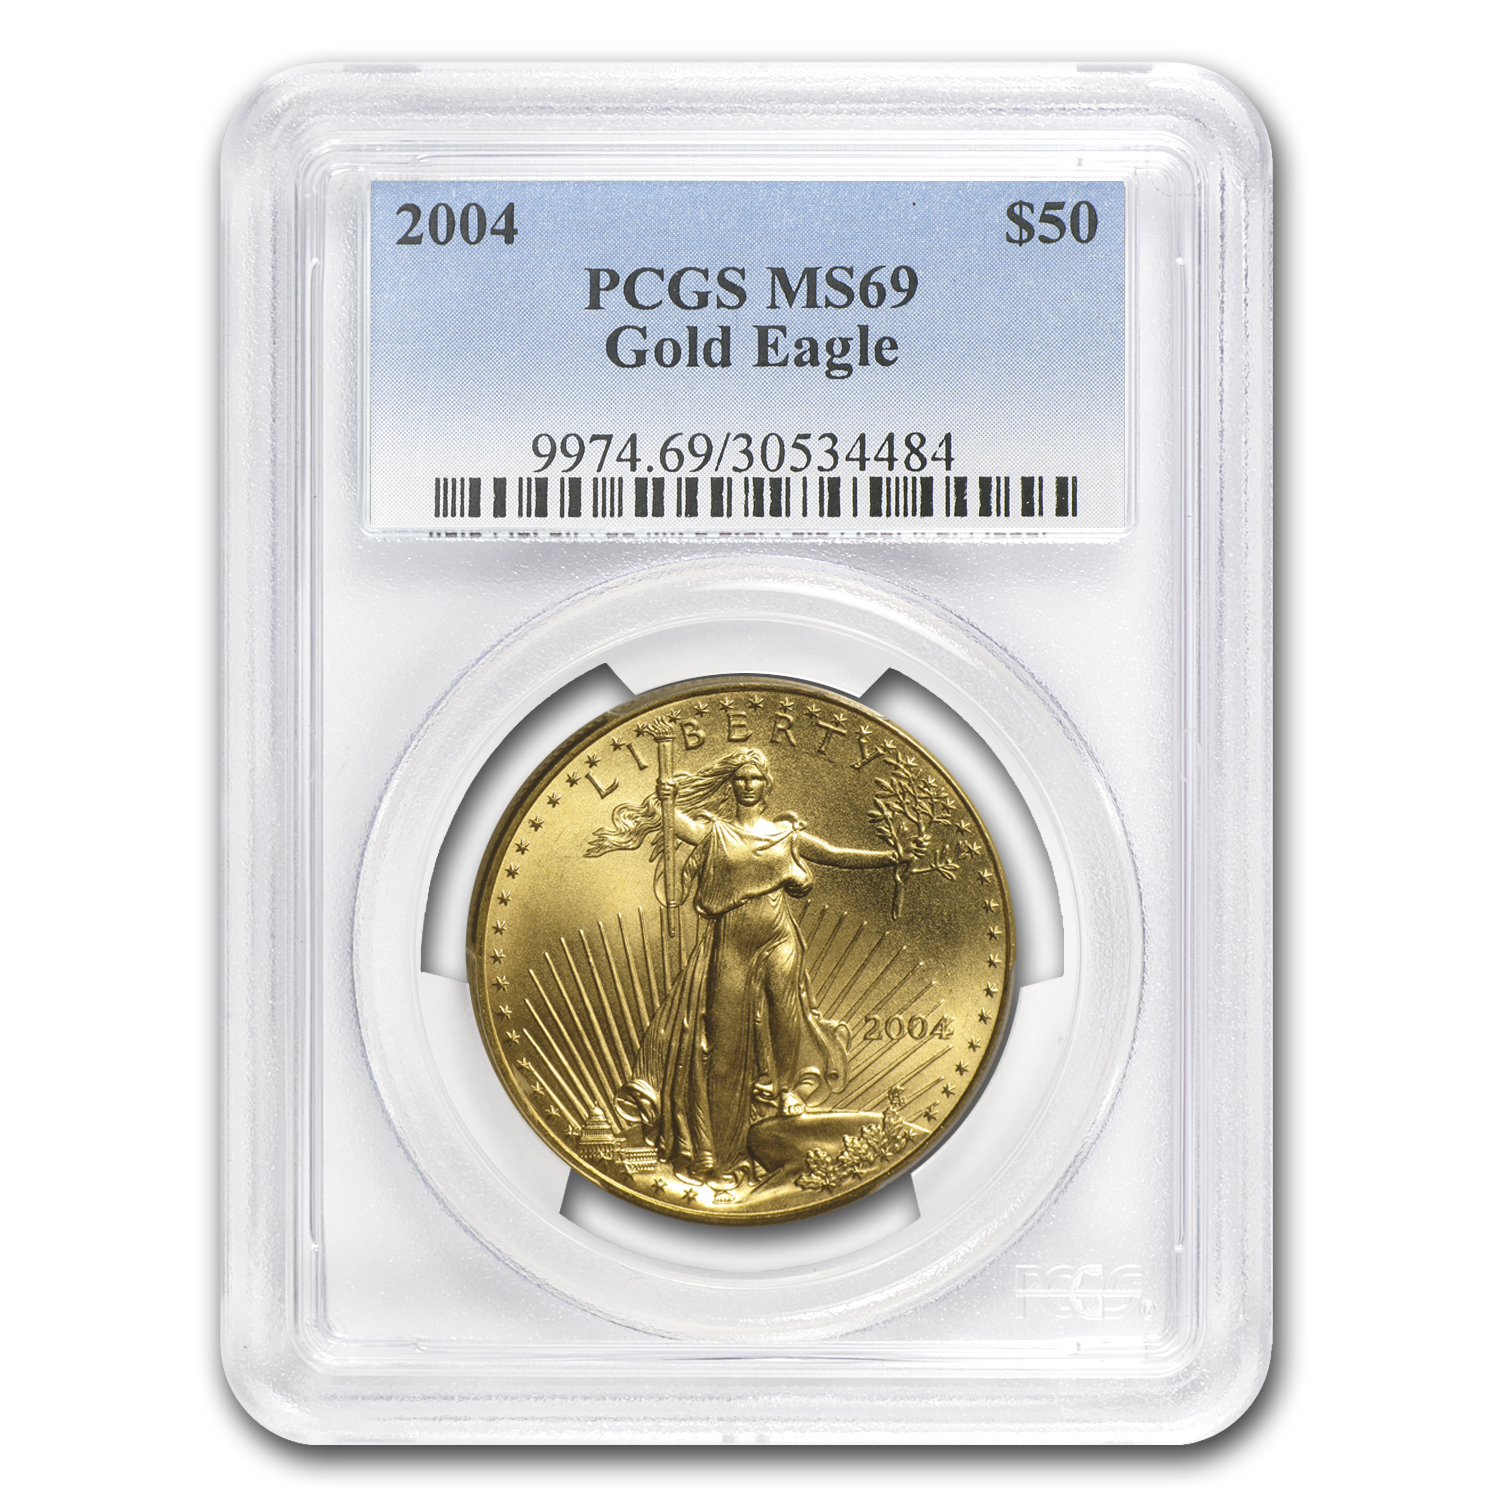 2004 1 oz Gold American Eagle MS-69 PCGS